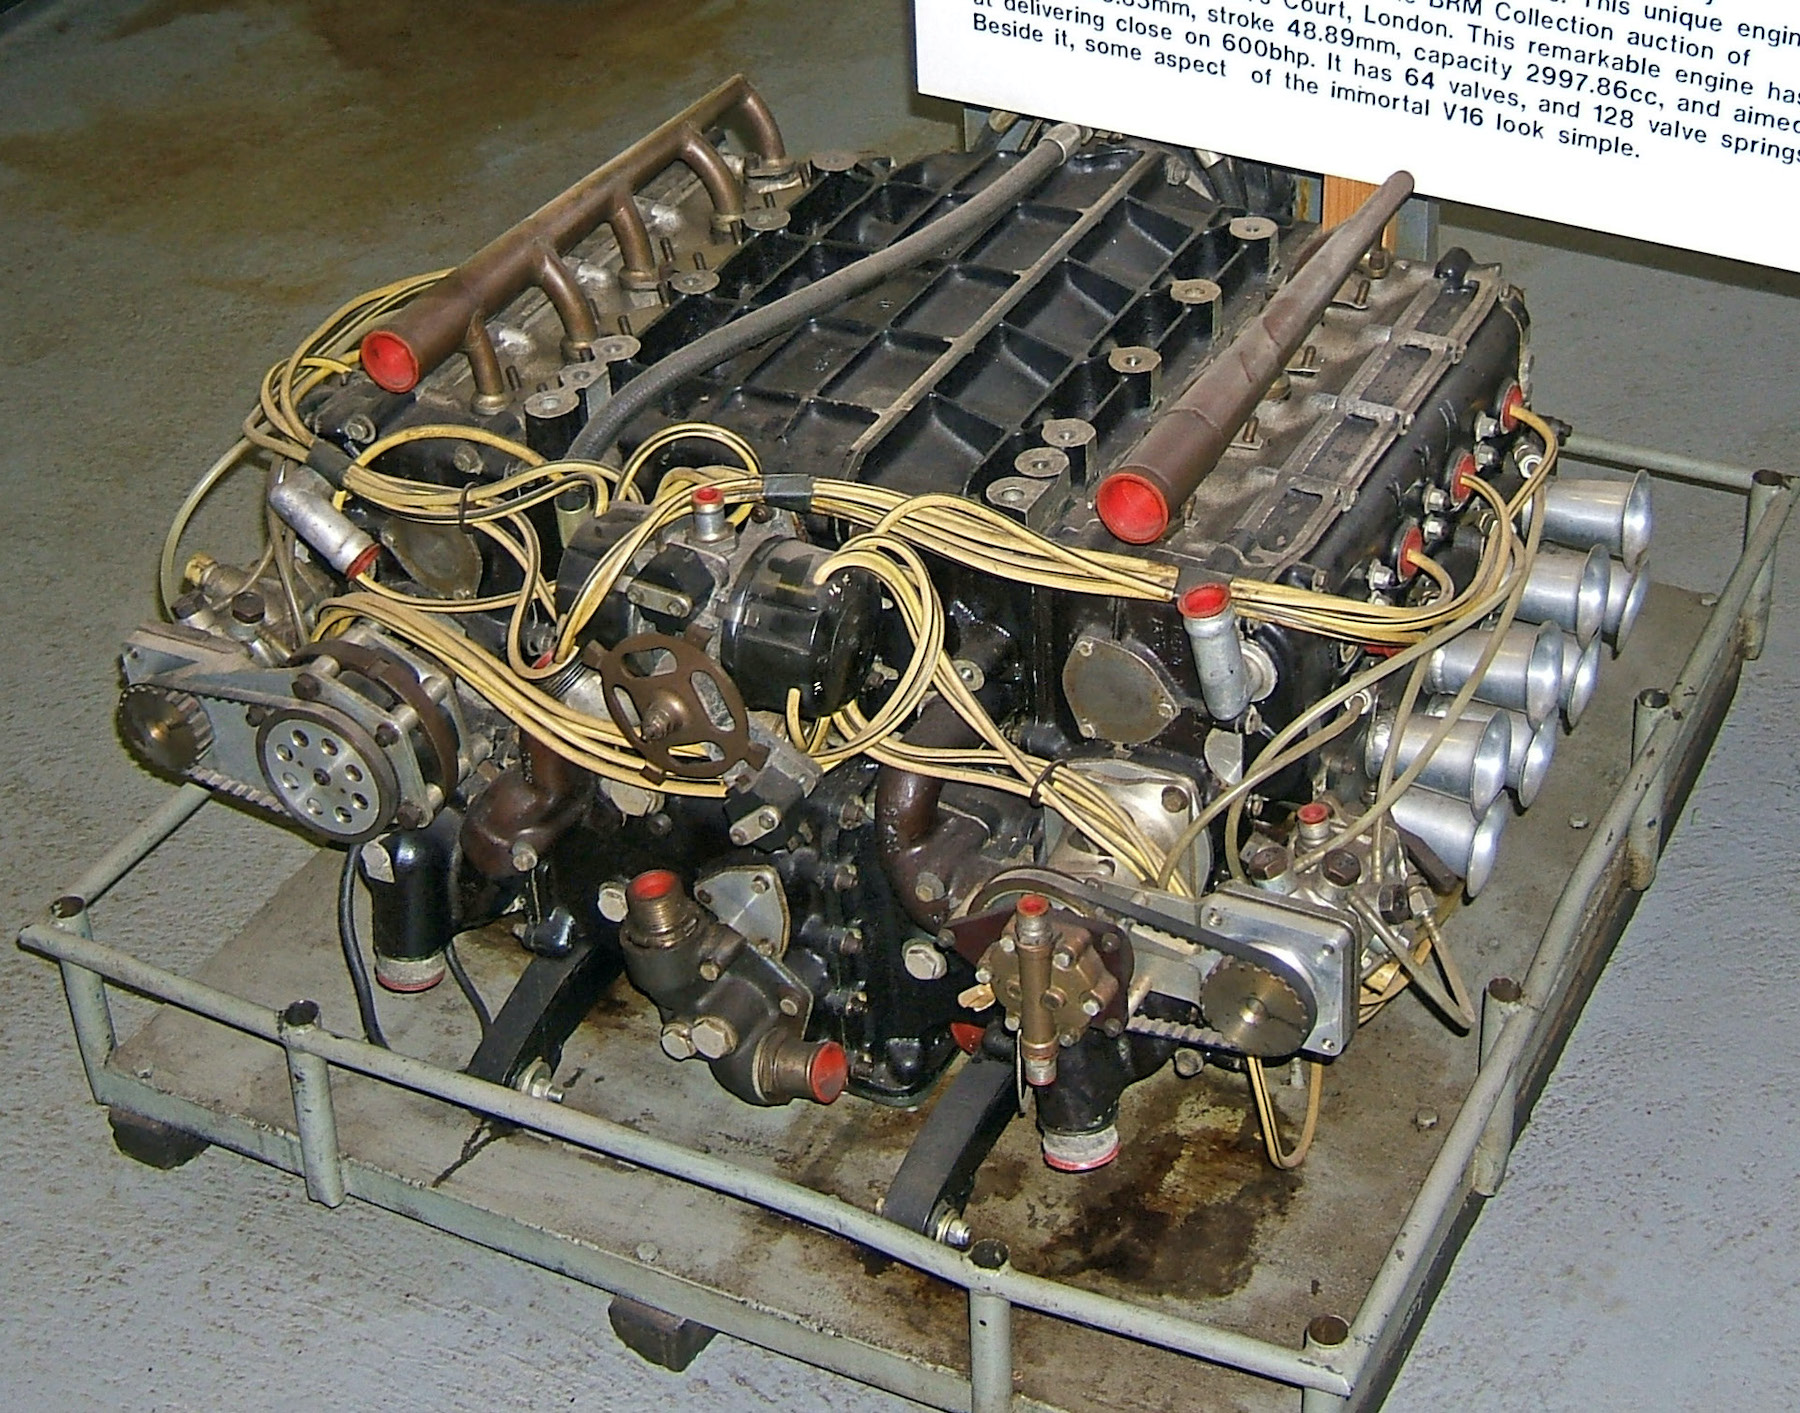 BRM_H16_engine